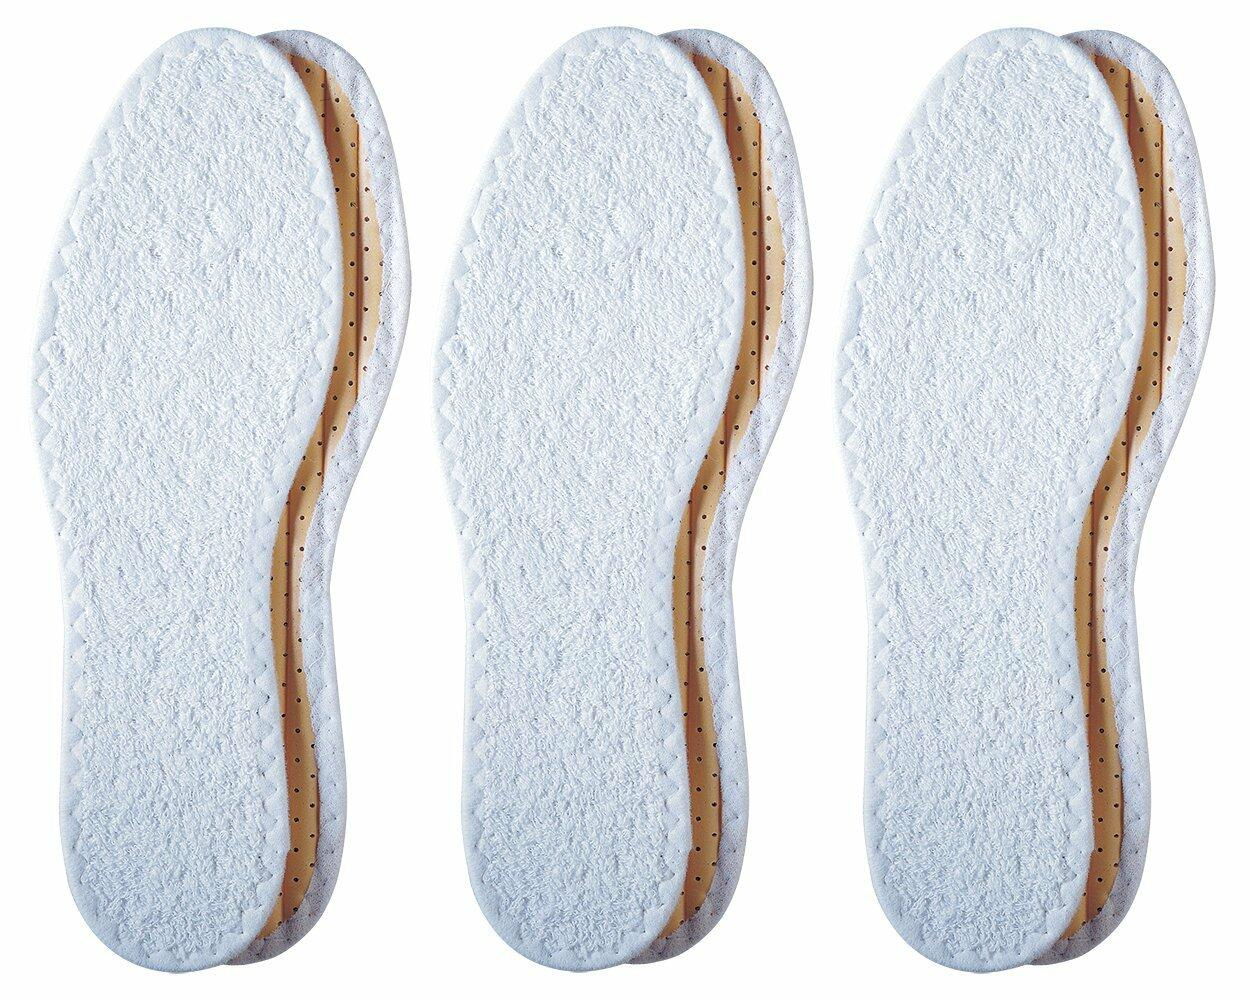 Pedag Washable Summer Pure Cotton Terry Barefoot Insole